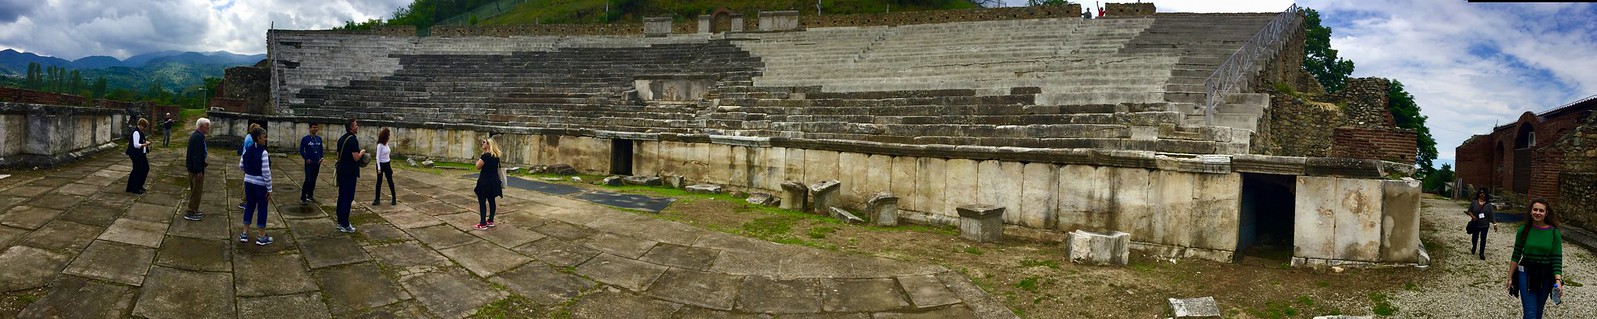 201705 - Balkans - Heraclea Lyncestis Ampitheater - 65 of 89 - Bitola, May 27, 2017